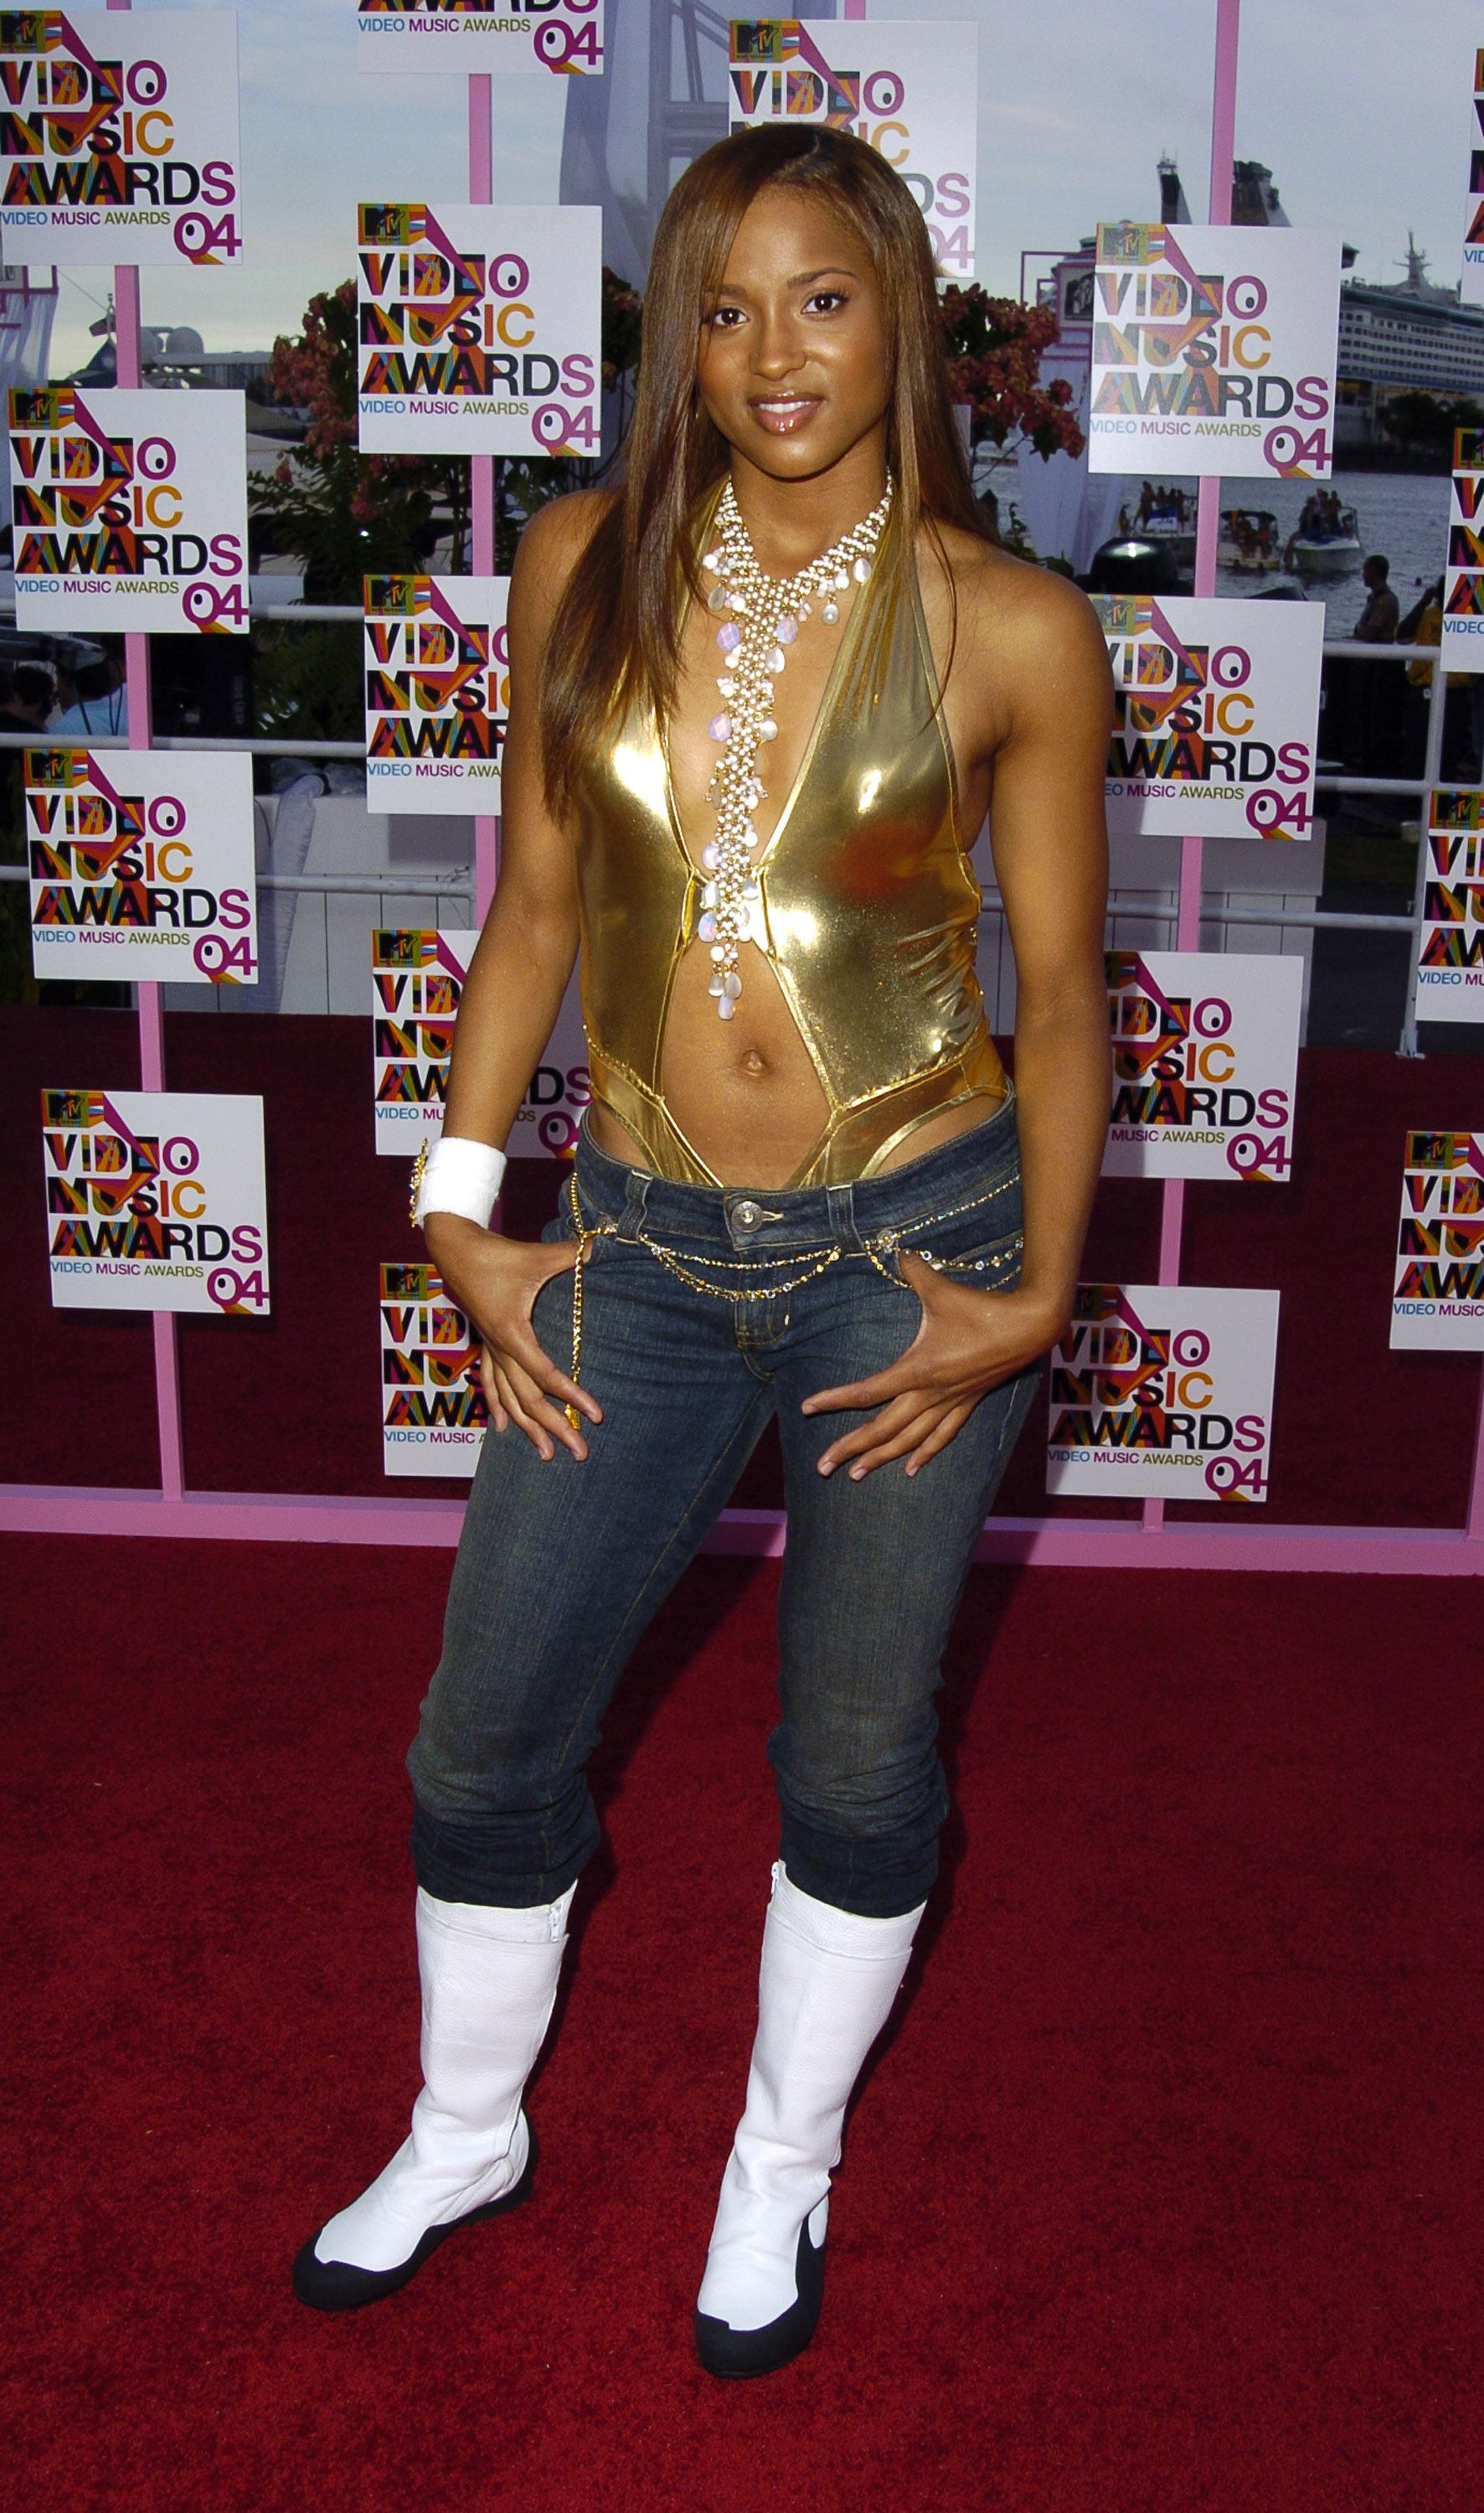 Singer Ciara attending the 2004 MTV Video Music Awards in Florida. | Photo: Getty Images